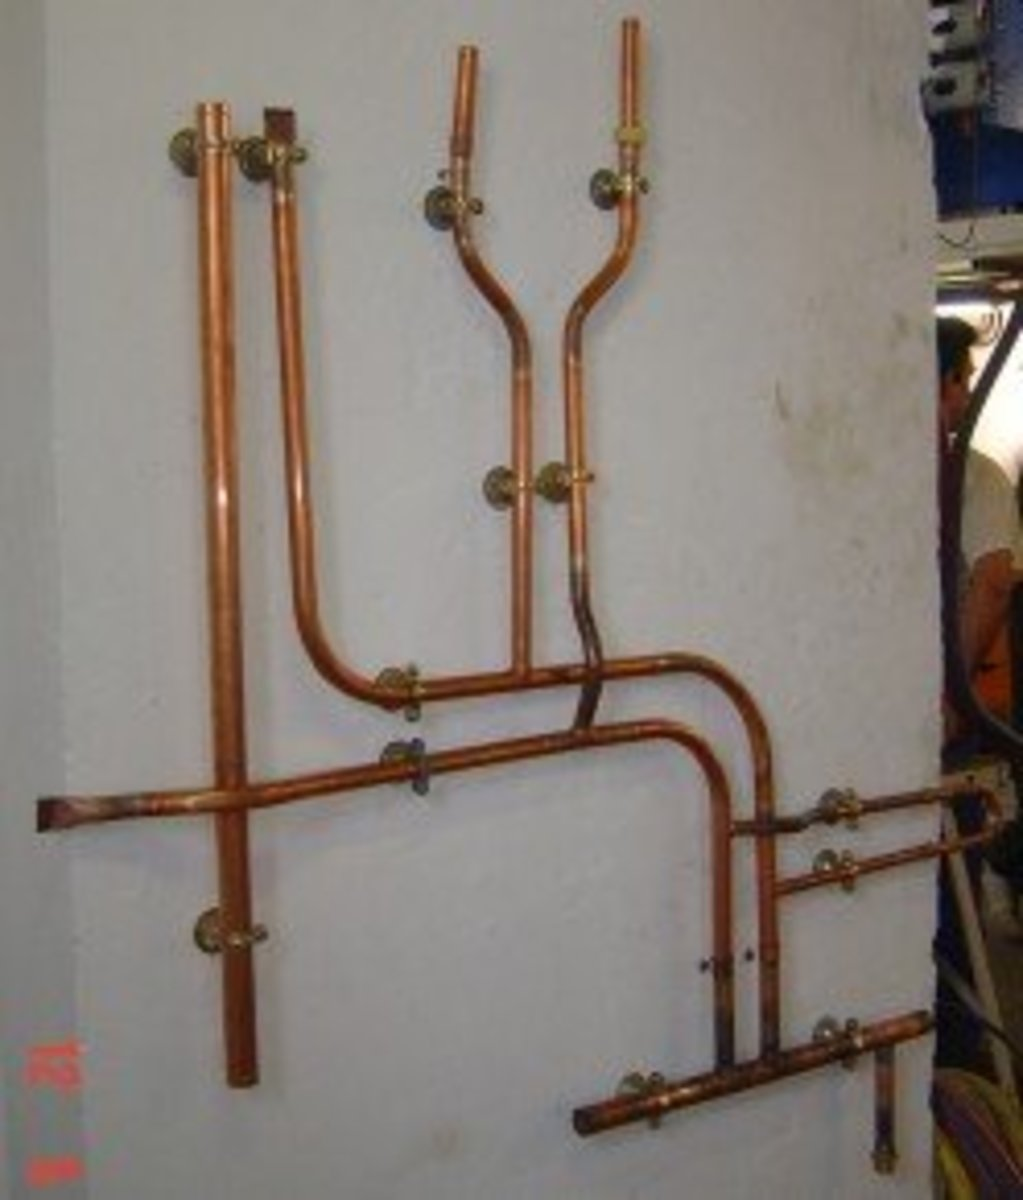 Using Copper Pipes for Outdoor Shower Plumbing